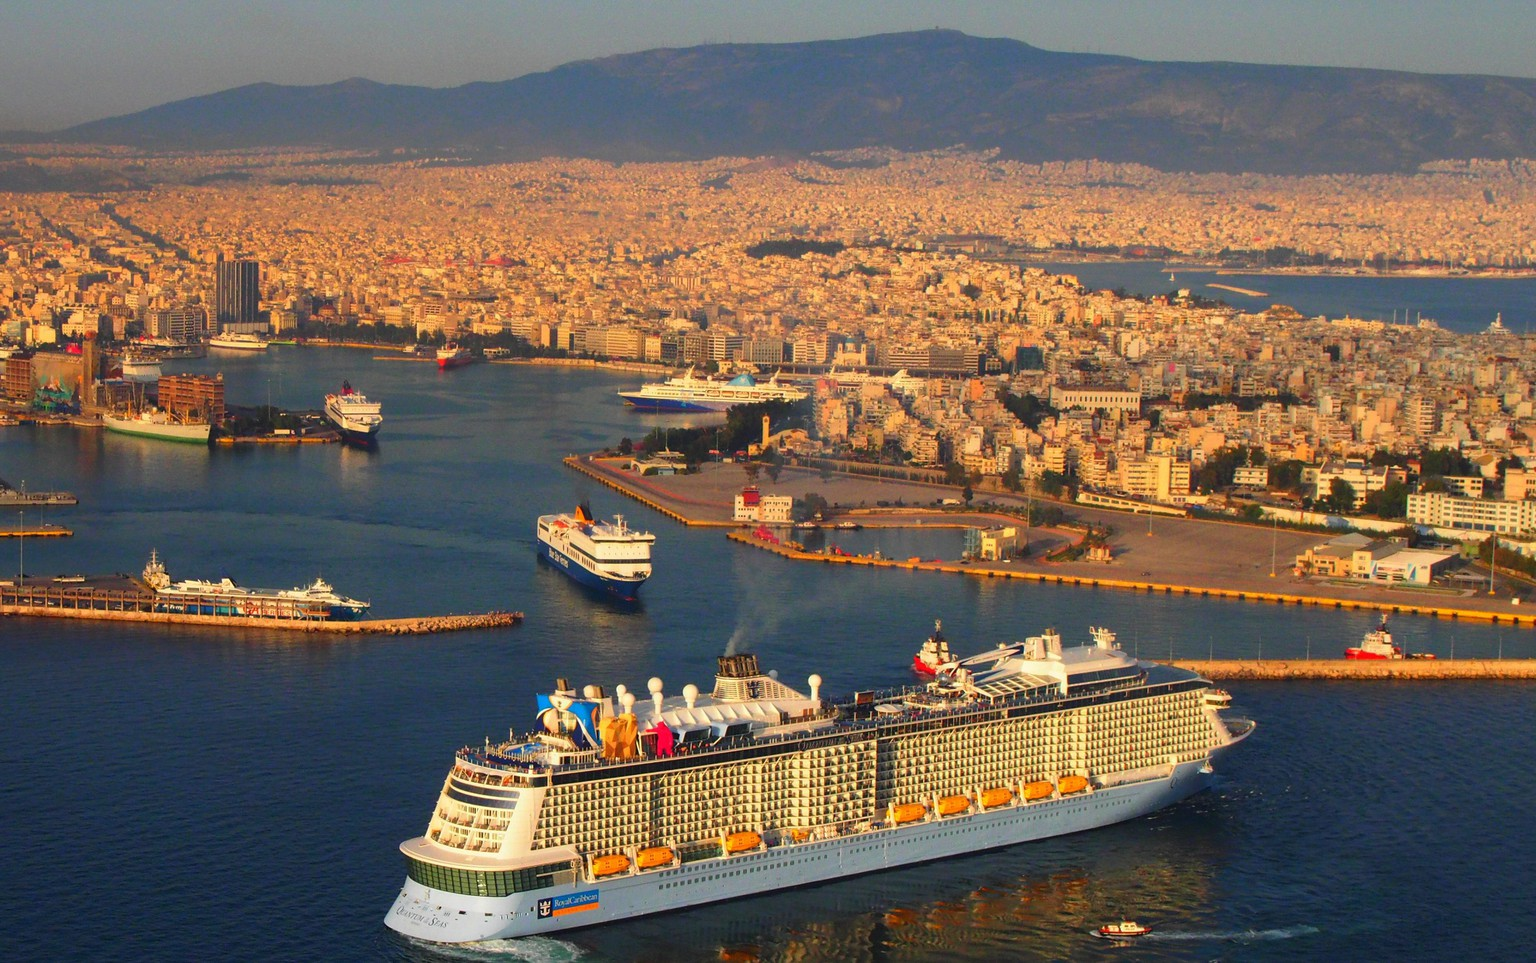 epa04755853 An aerial view shows the 347-meter long cruise ship Quantum of the Seas (F) of Royal Carribean as it enters the port of Piraeus near Athens, Greece, 18 May, 2015. Speaking at the 19th Economist Roundtable in Athens on Friday, Alternate Minister for Tourism Elena Kountoura said that an extension of the tourist season is still the target for Greece, as well as to make the 'top five; for the world's most popular destinations.  EPA/GEORGE CHRISTAKIS